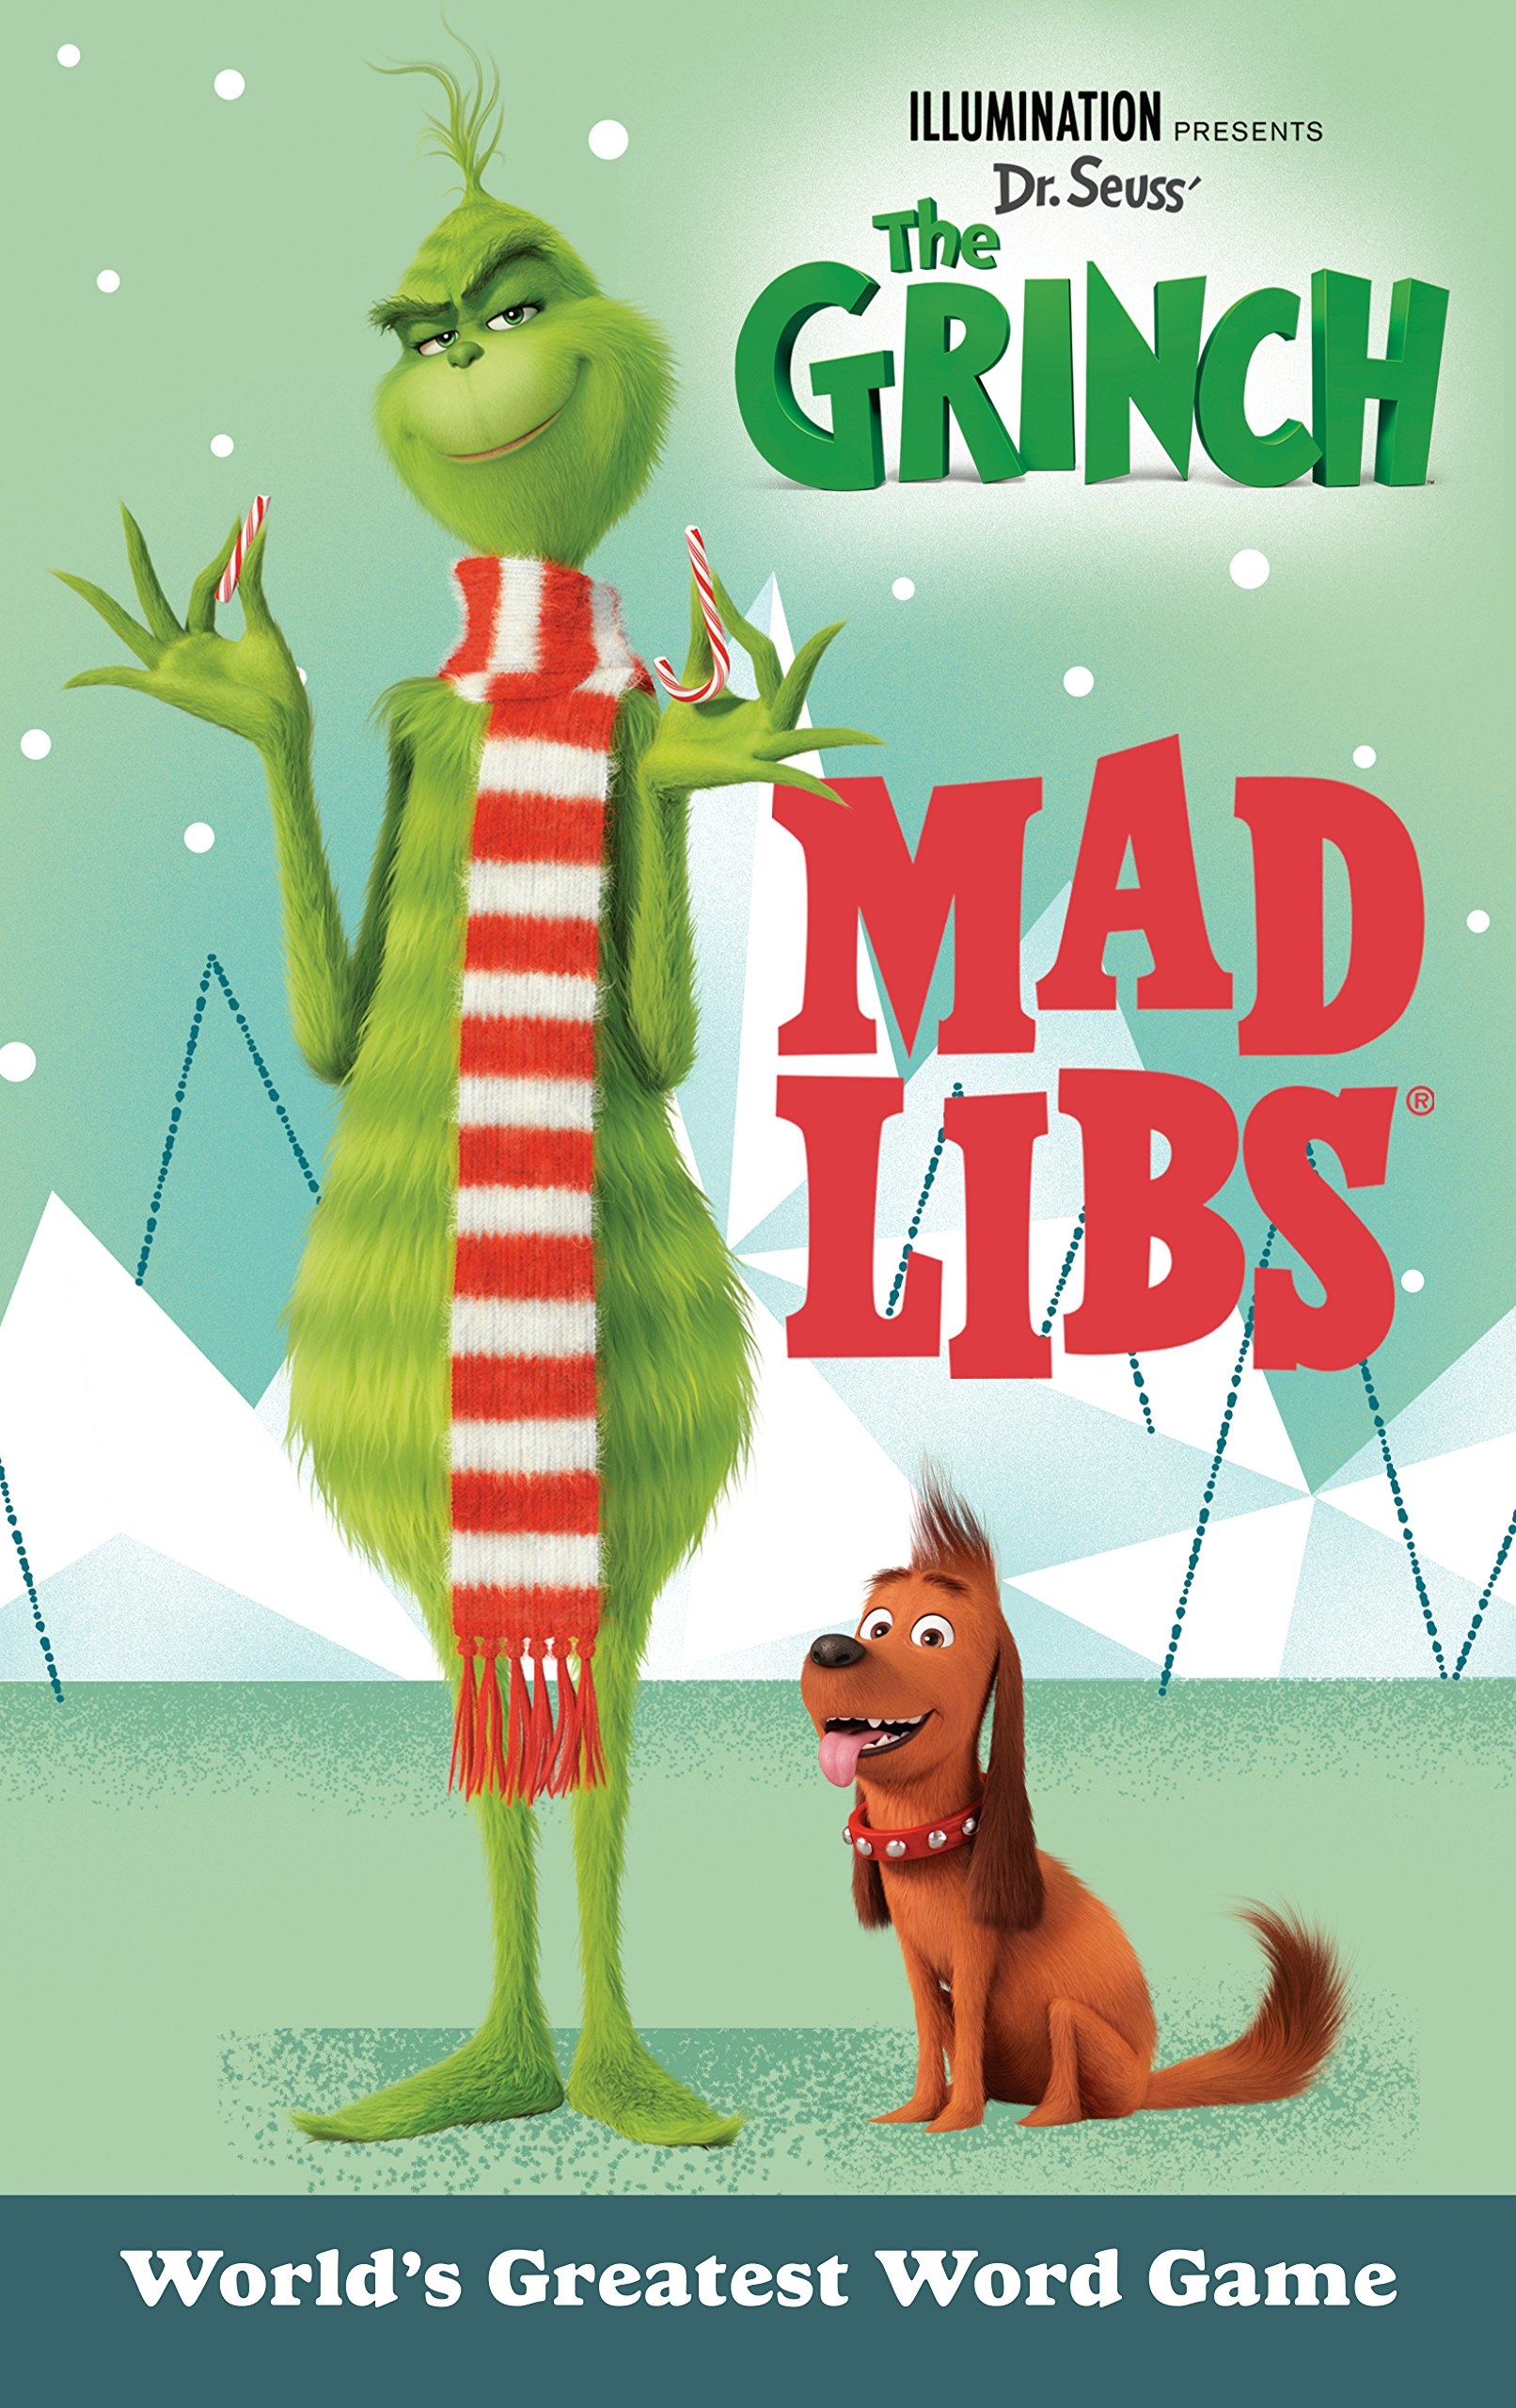 illumination presents dr seuss the grinch mad libs sara schonfeld 9781524788711 amazoncom books